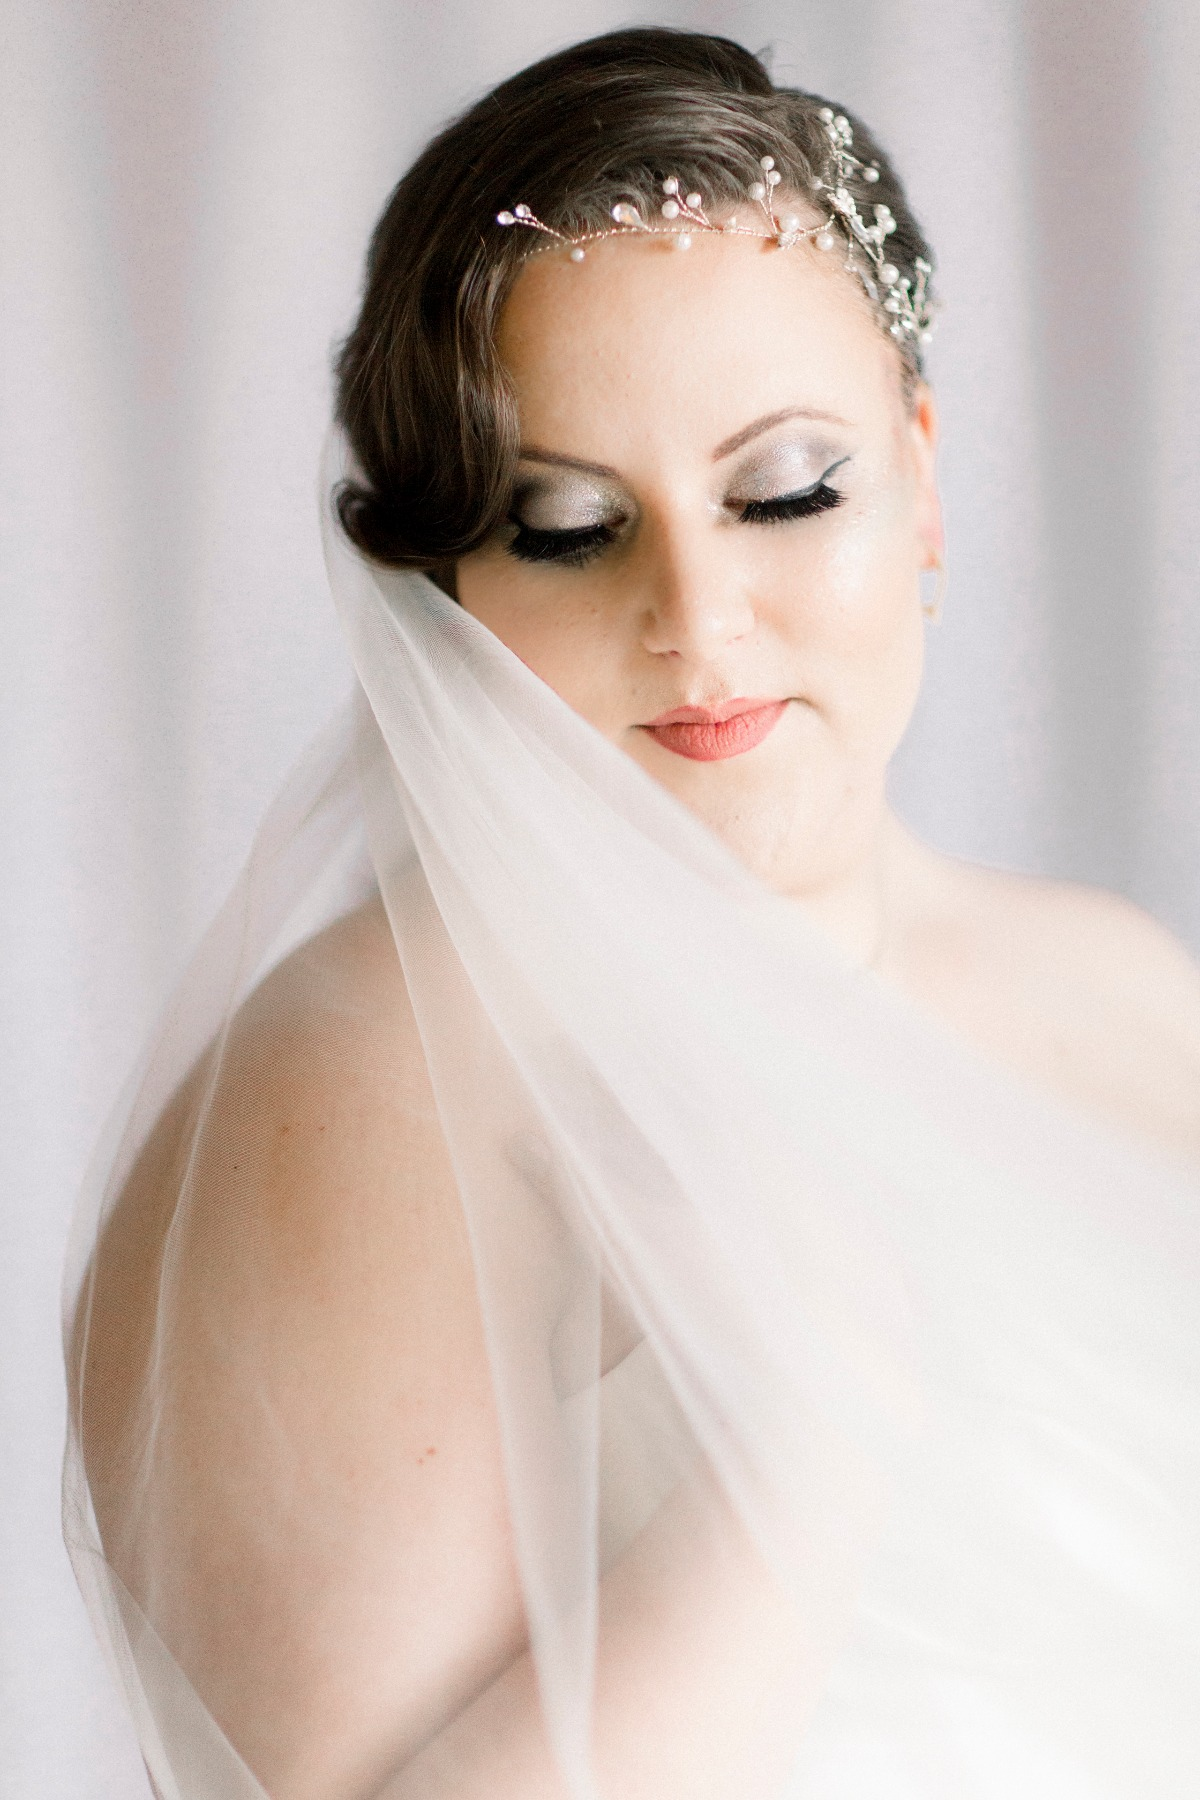 Bridal eye makeup in silver